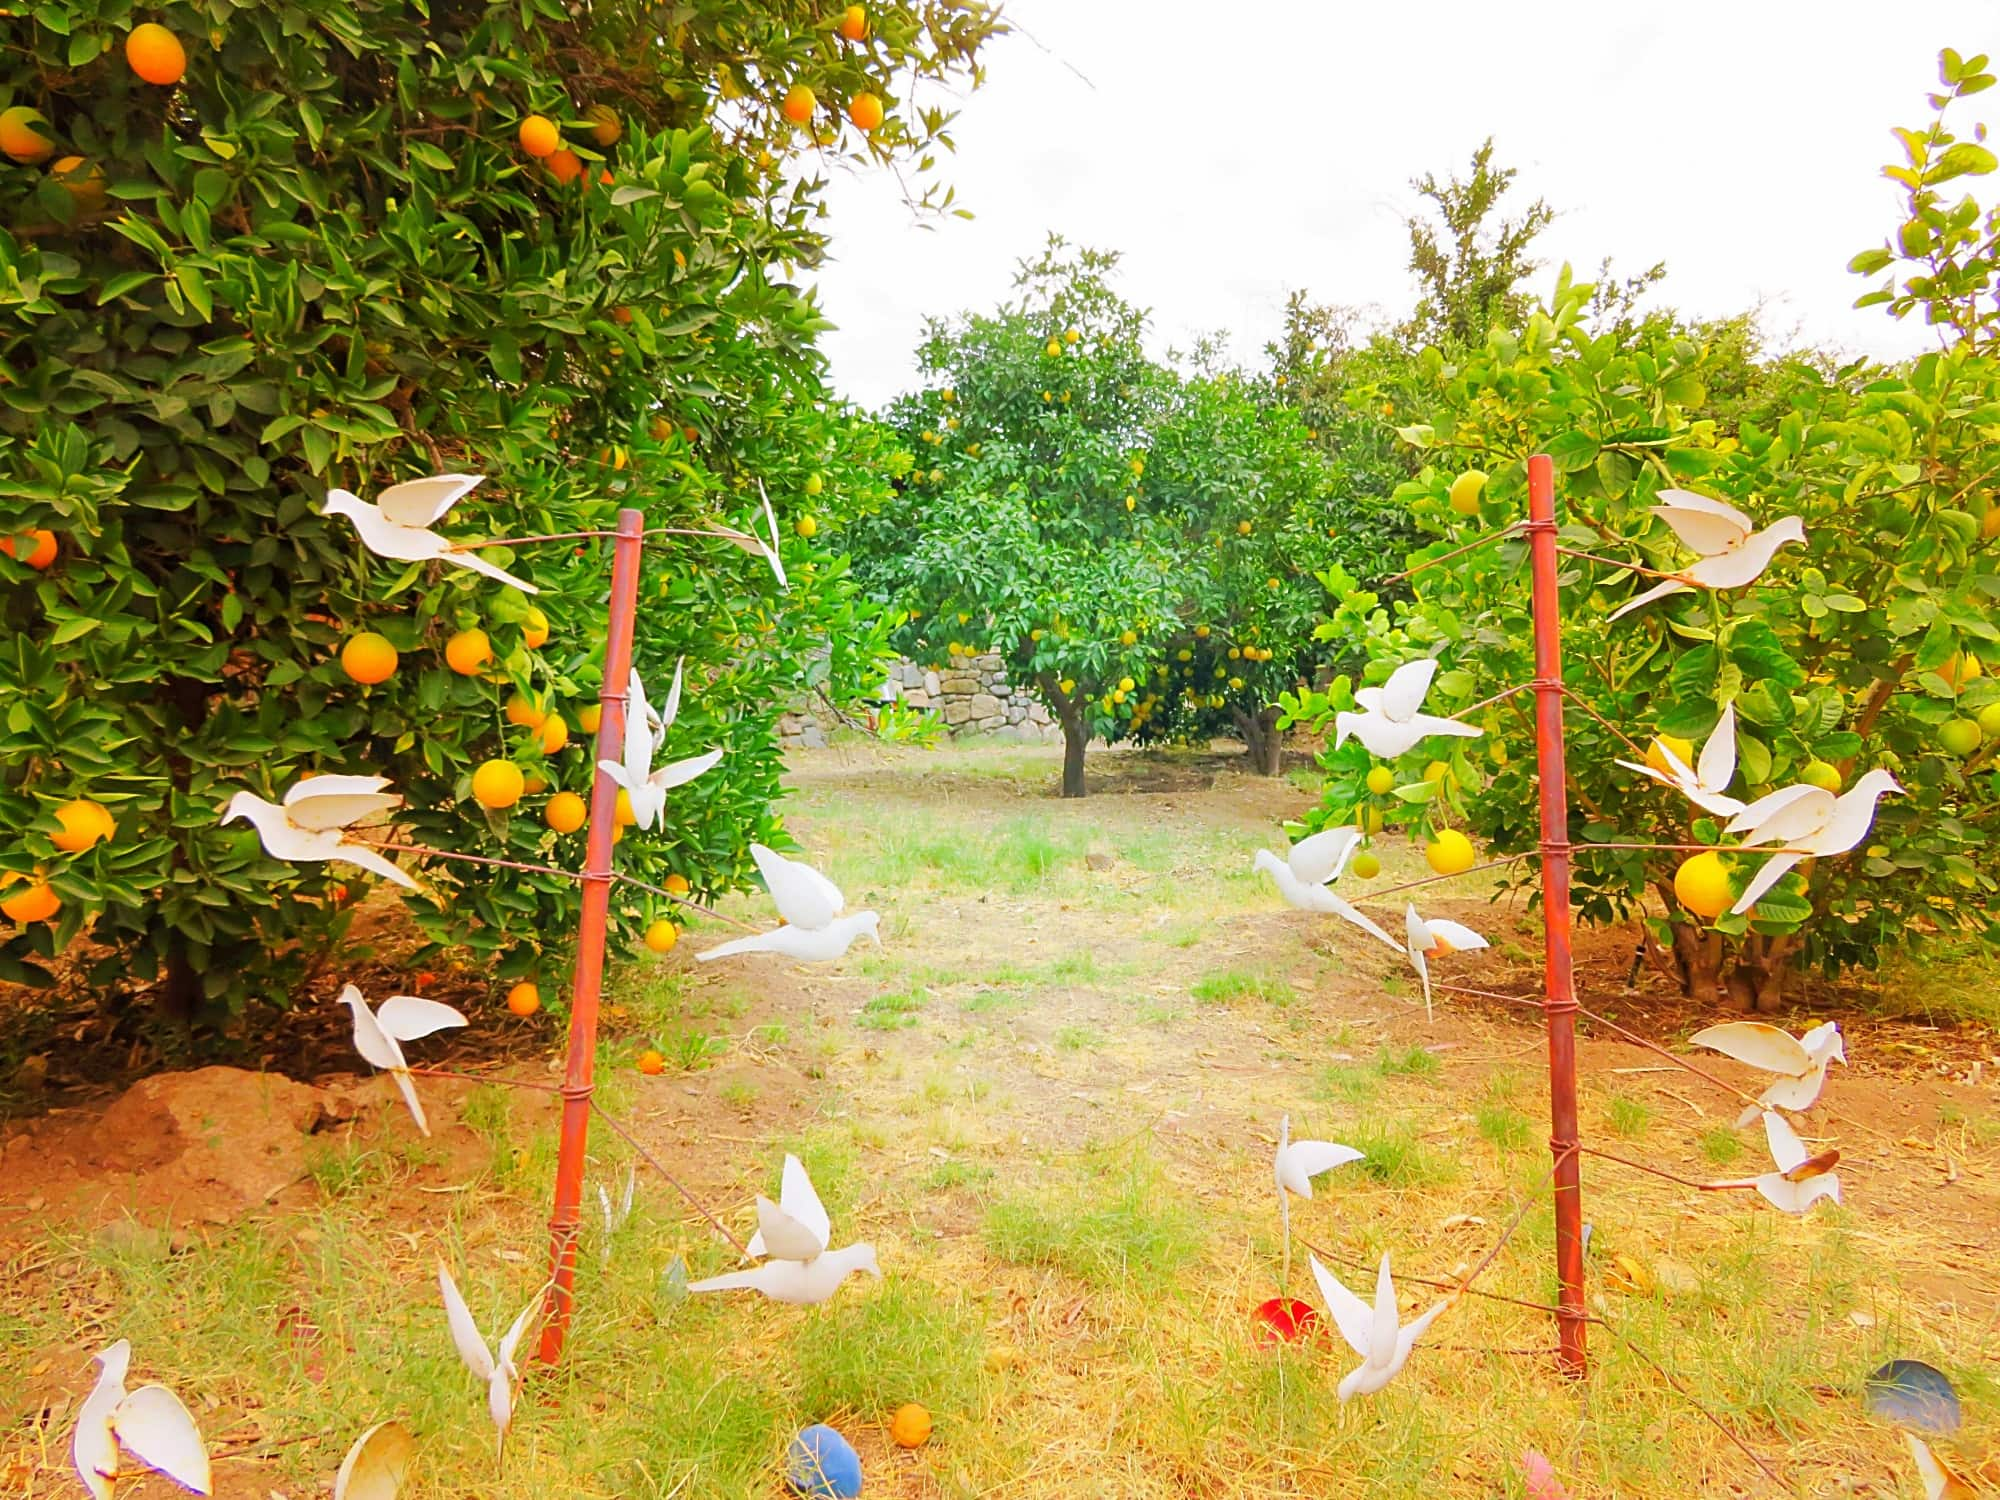 A dove art installation among citrus trees at Aravaipa Farms Inn